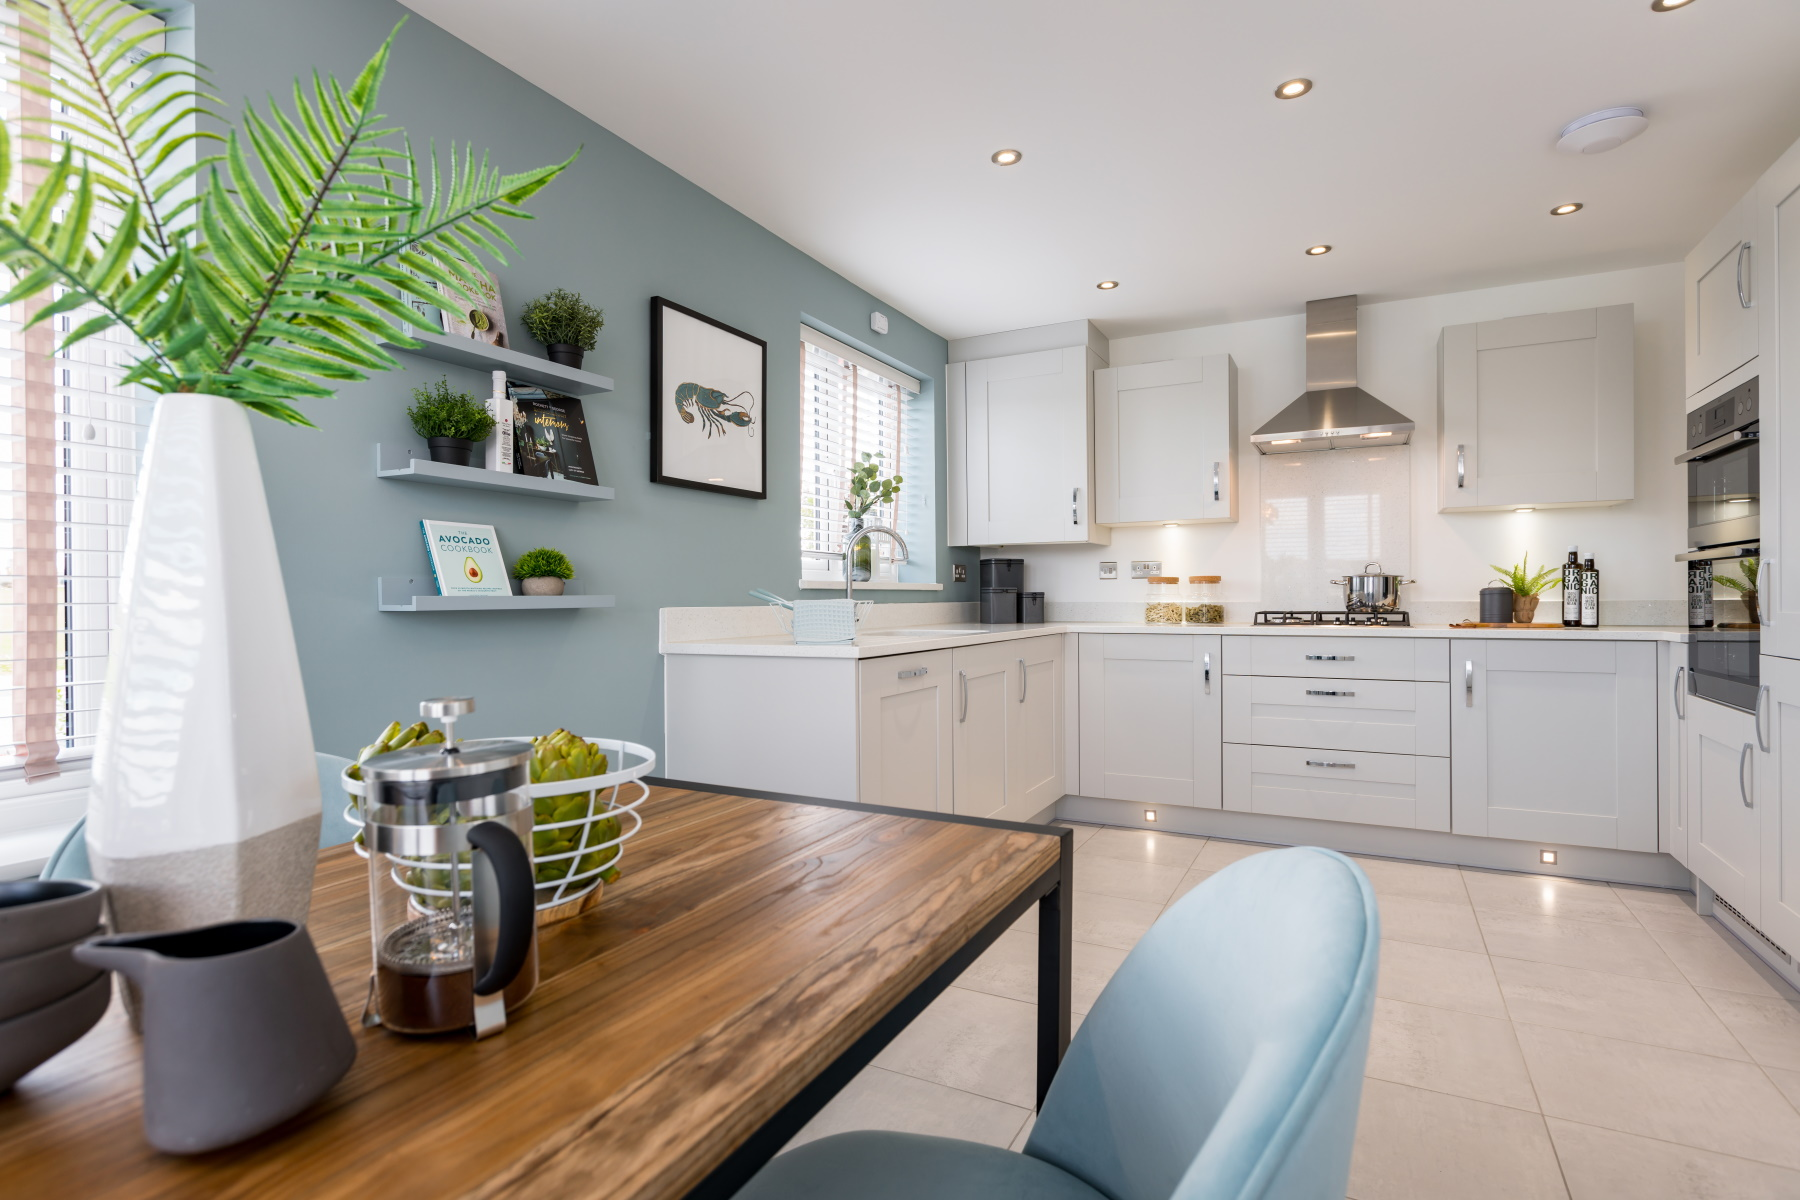 Taylor Wimpey Exeter - Mayfield Gardens - Kingdale example kitchen 2